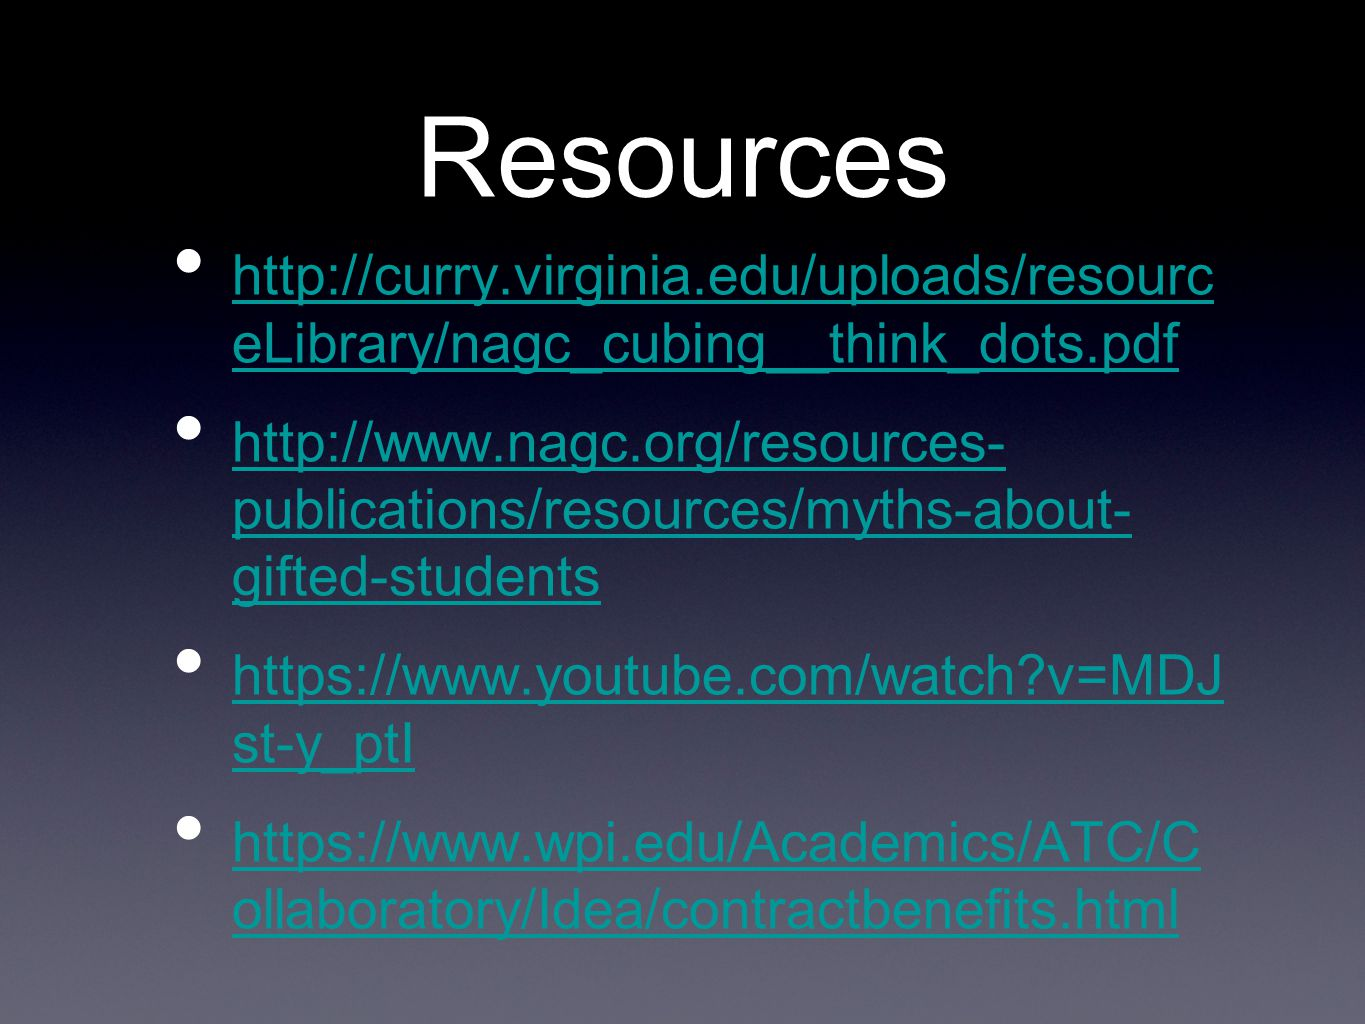 Resources http://curry.virginia.edu/uploads/resourc eLibrary/nagc_cubing__think_dots.pdf http://curry.virginia.edu/uploads/resourc eLibrary/nagc_cubing__think_dots.pdf http://www.nagc.org/resources- publications/resources/myths-about- gifted-students http://www.nagc.org/resources- publications/resources/myths-about- gifted-students https://www.youtube.com/watch v=MDJ st-y_ptI https://www.youtube.com/watch v=MDJ st-y_ptI https://www.wpi.edu/Academics/ATC/C ollaboratory/Idea/contractbenefits.html https://www.wpi.edu/Academics/ATC/C ollaboratory/Idea/contractbenefits.html